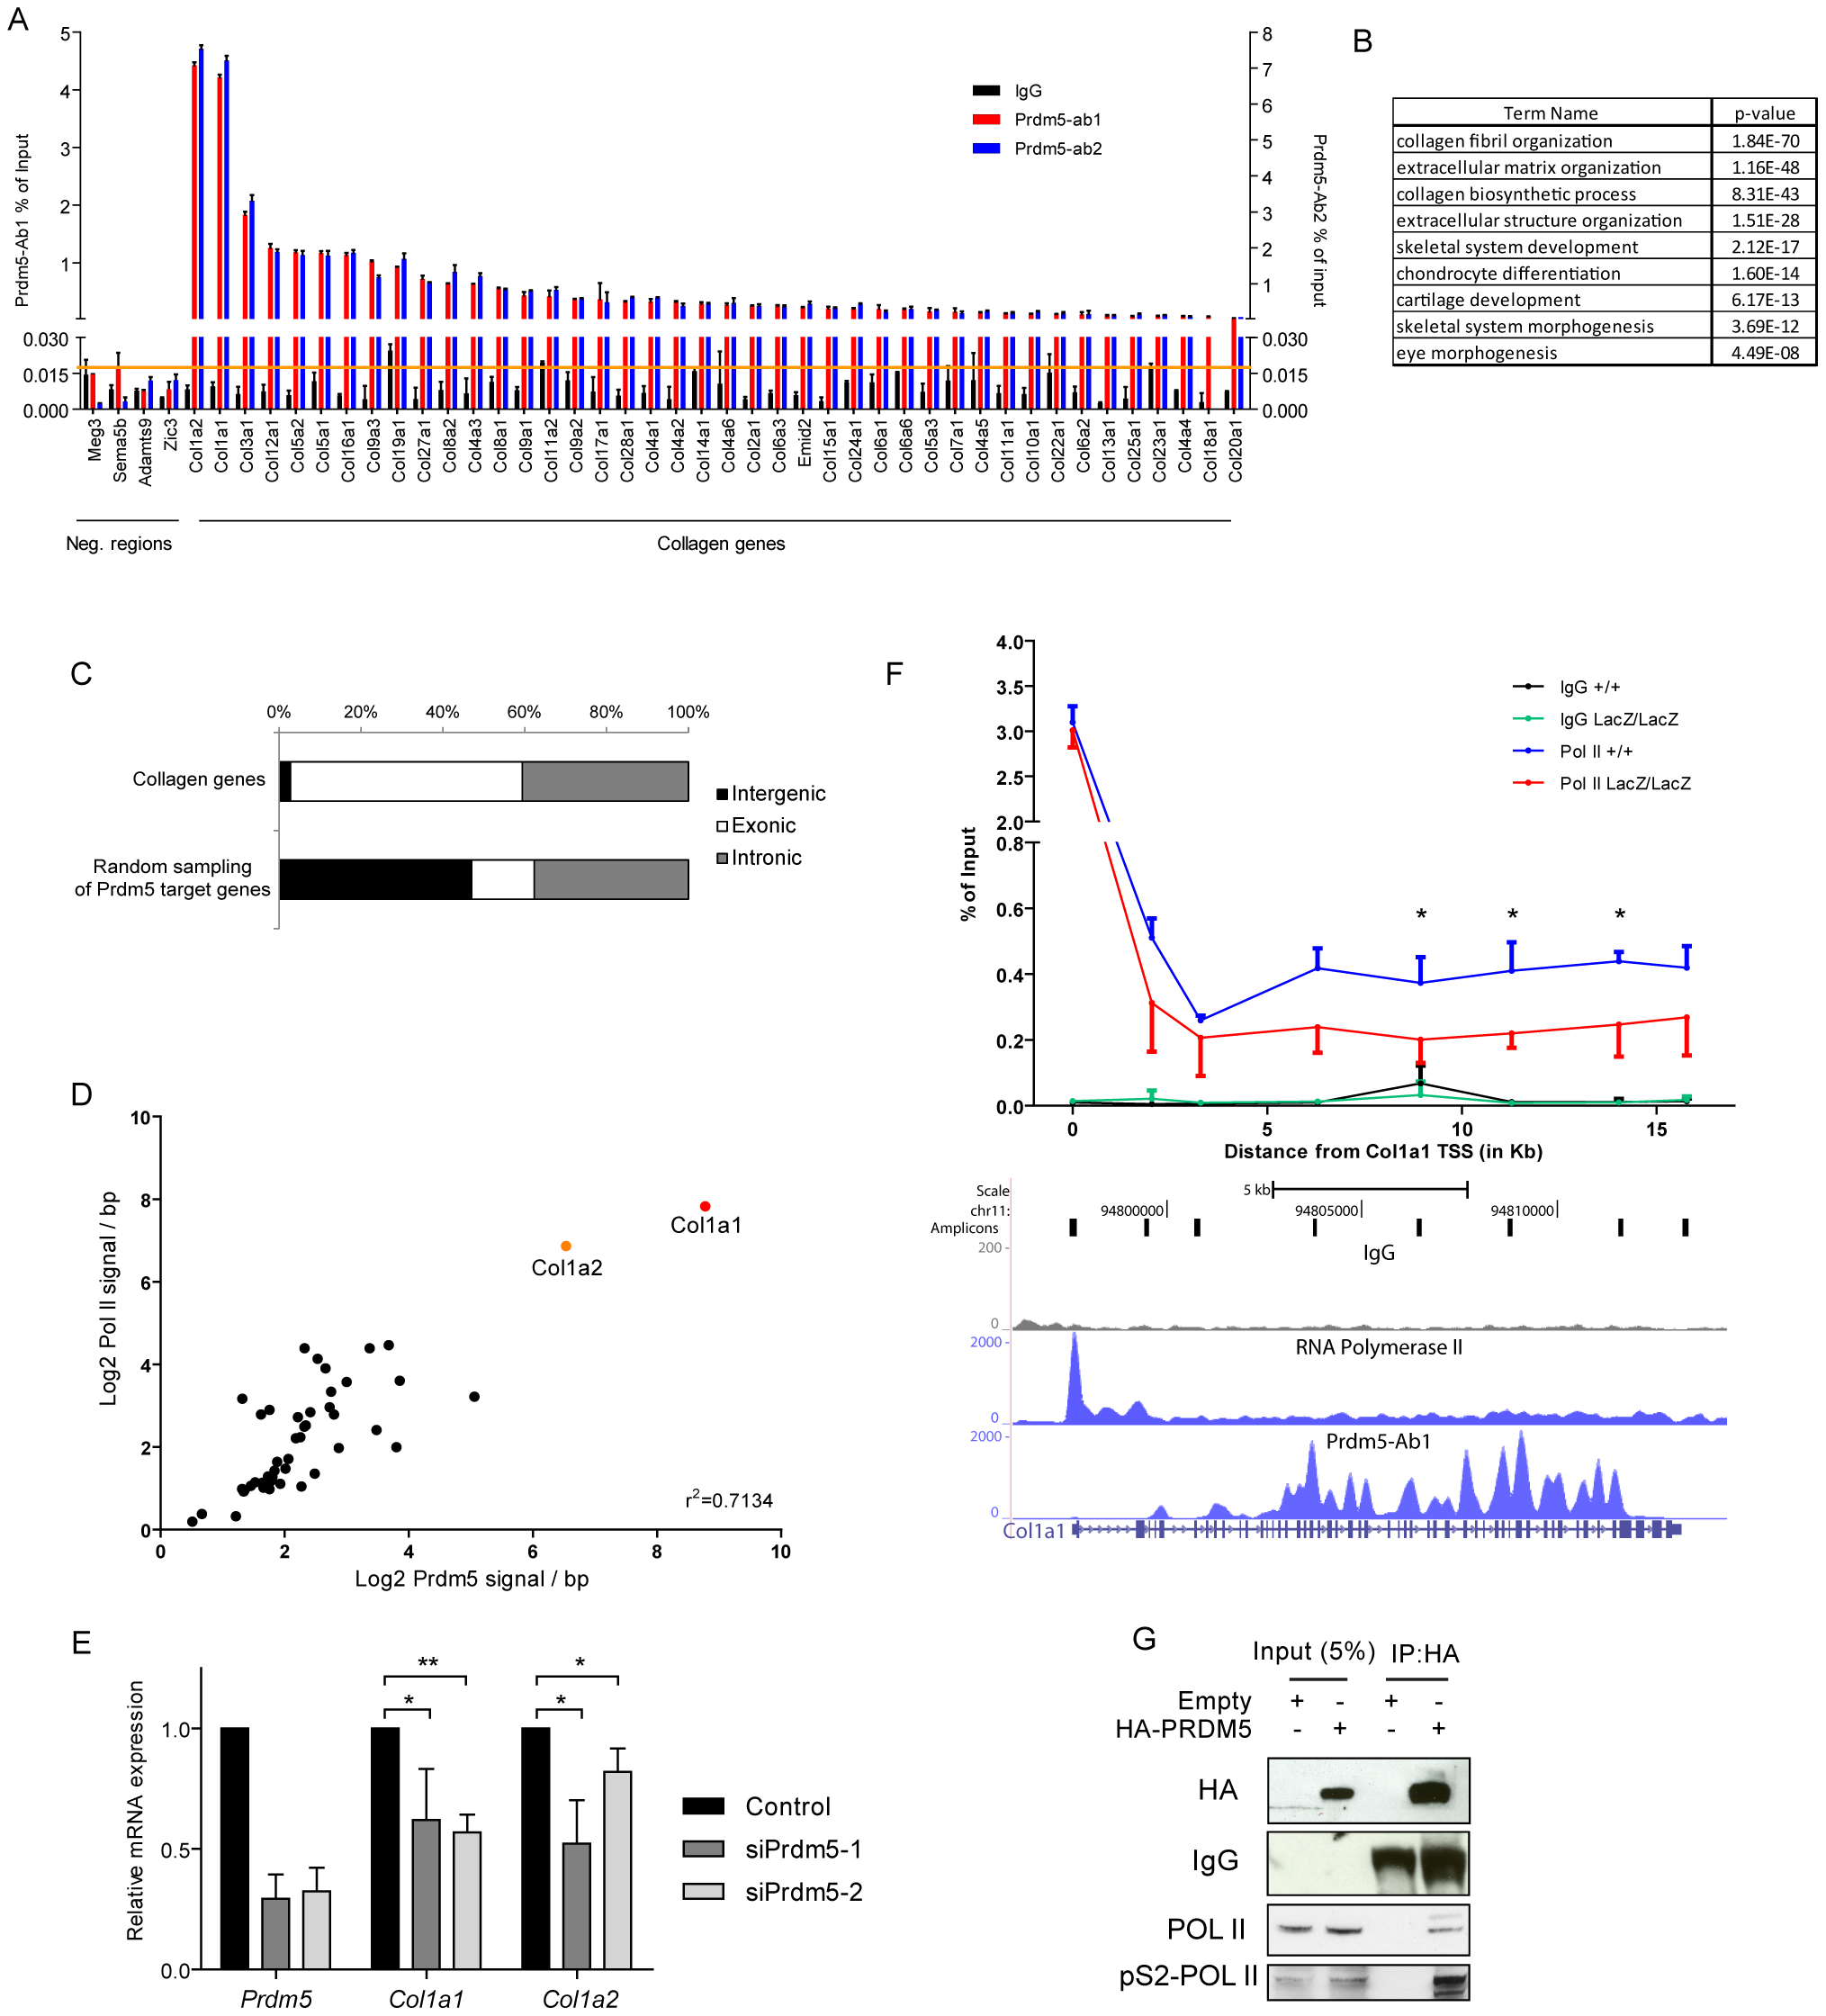 Prdm5 targets all collagen genes and regulates type I collagen expression.